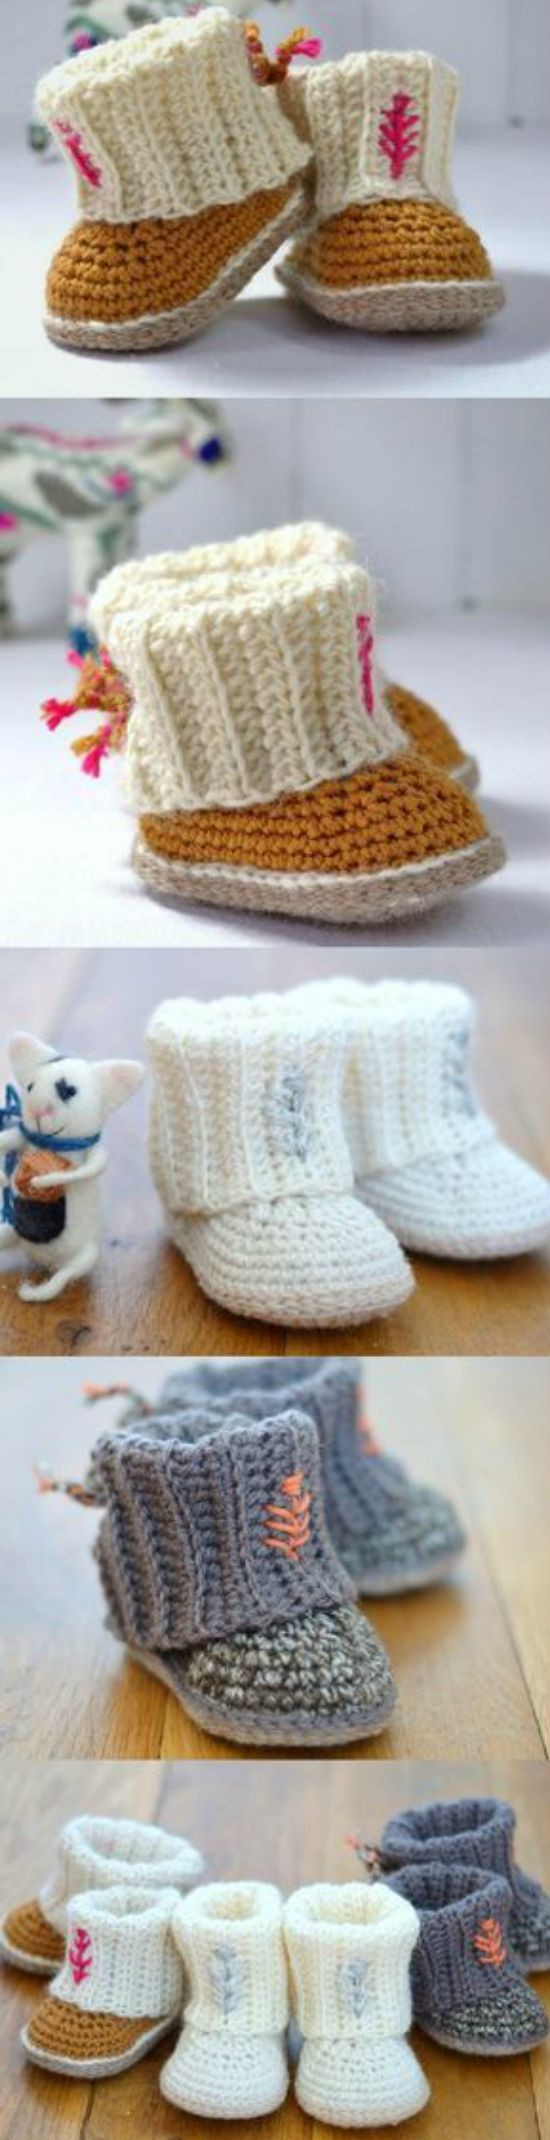 Best Of Crochet Ugg Booties Pattern Free Easy Video Tutorial Crochet Ugg Of New 40 Ideas Crochet Ugg